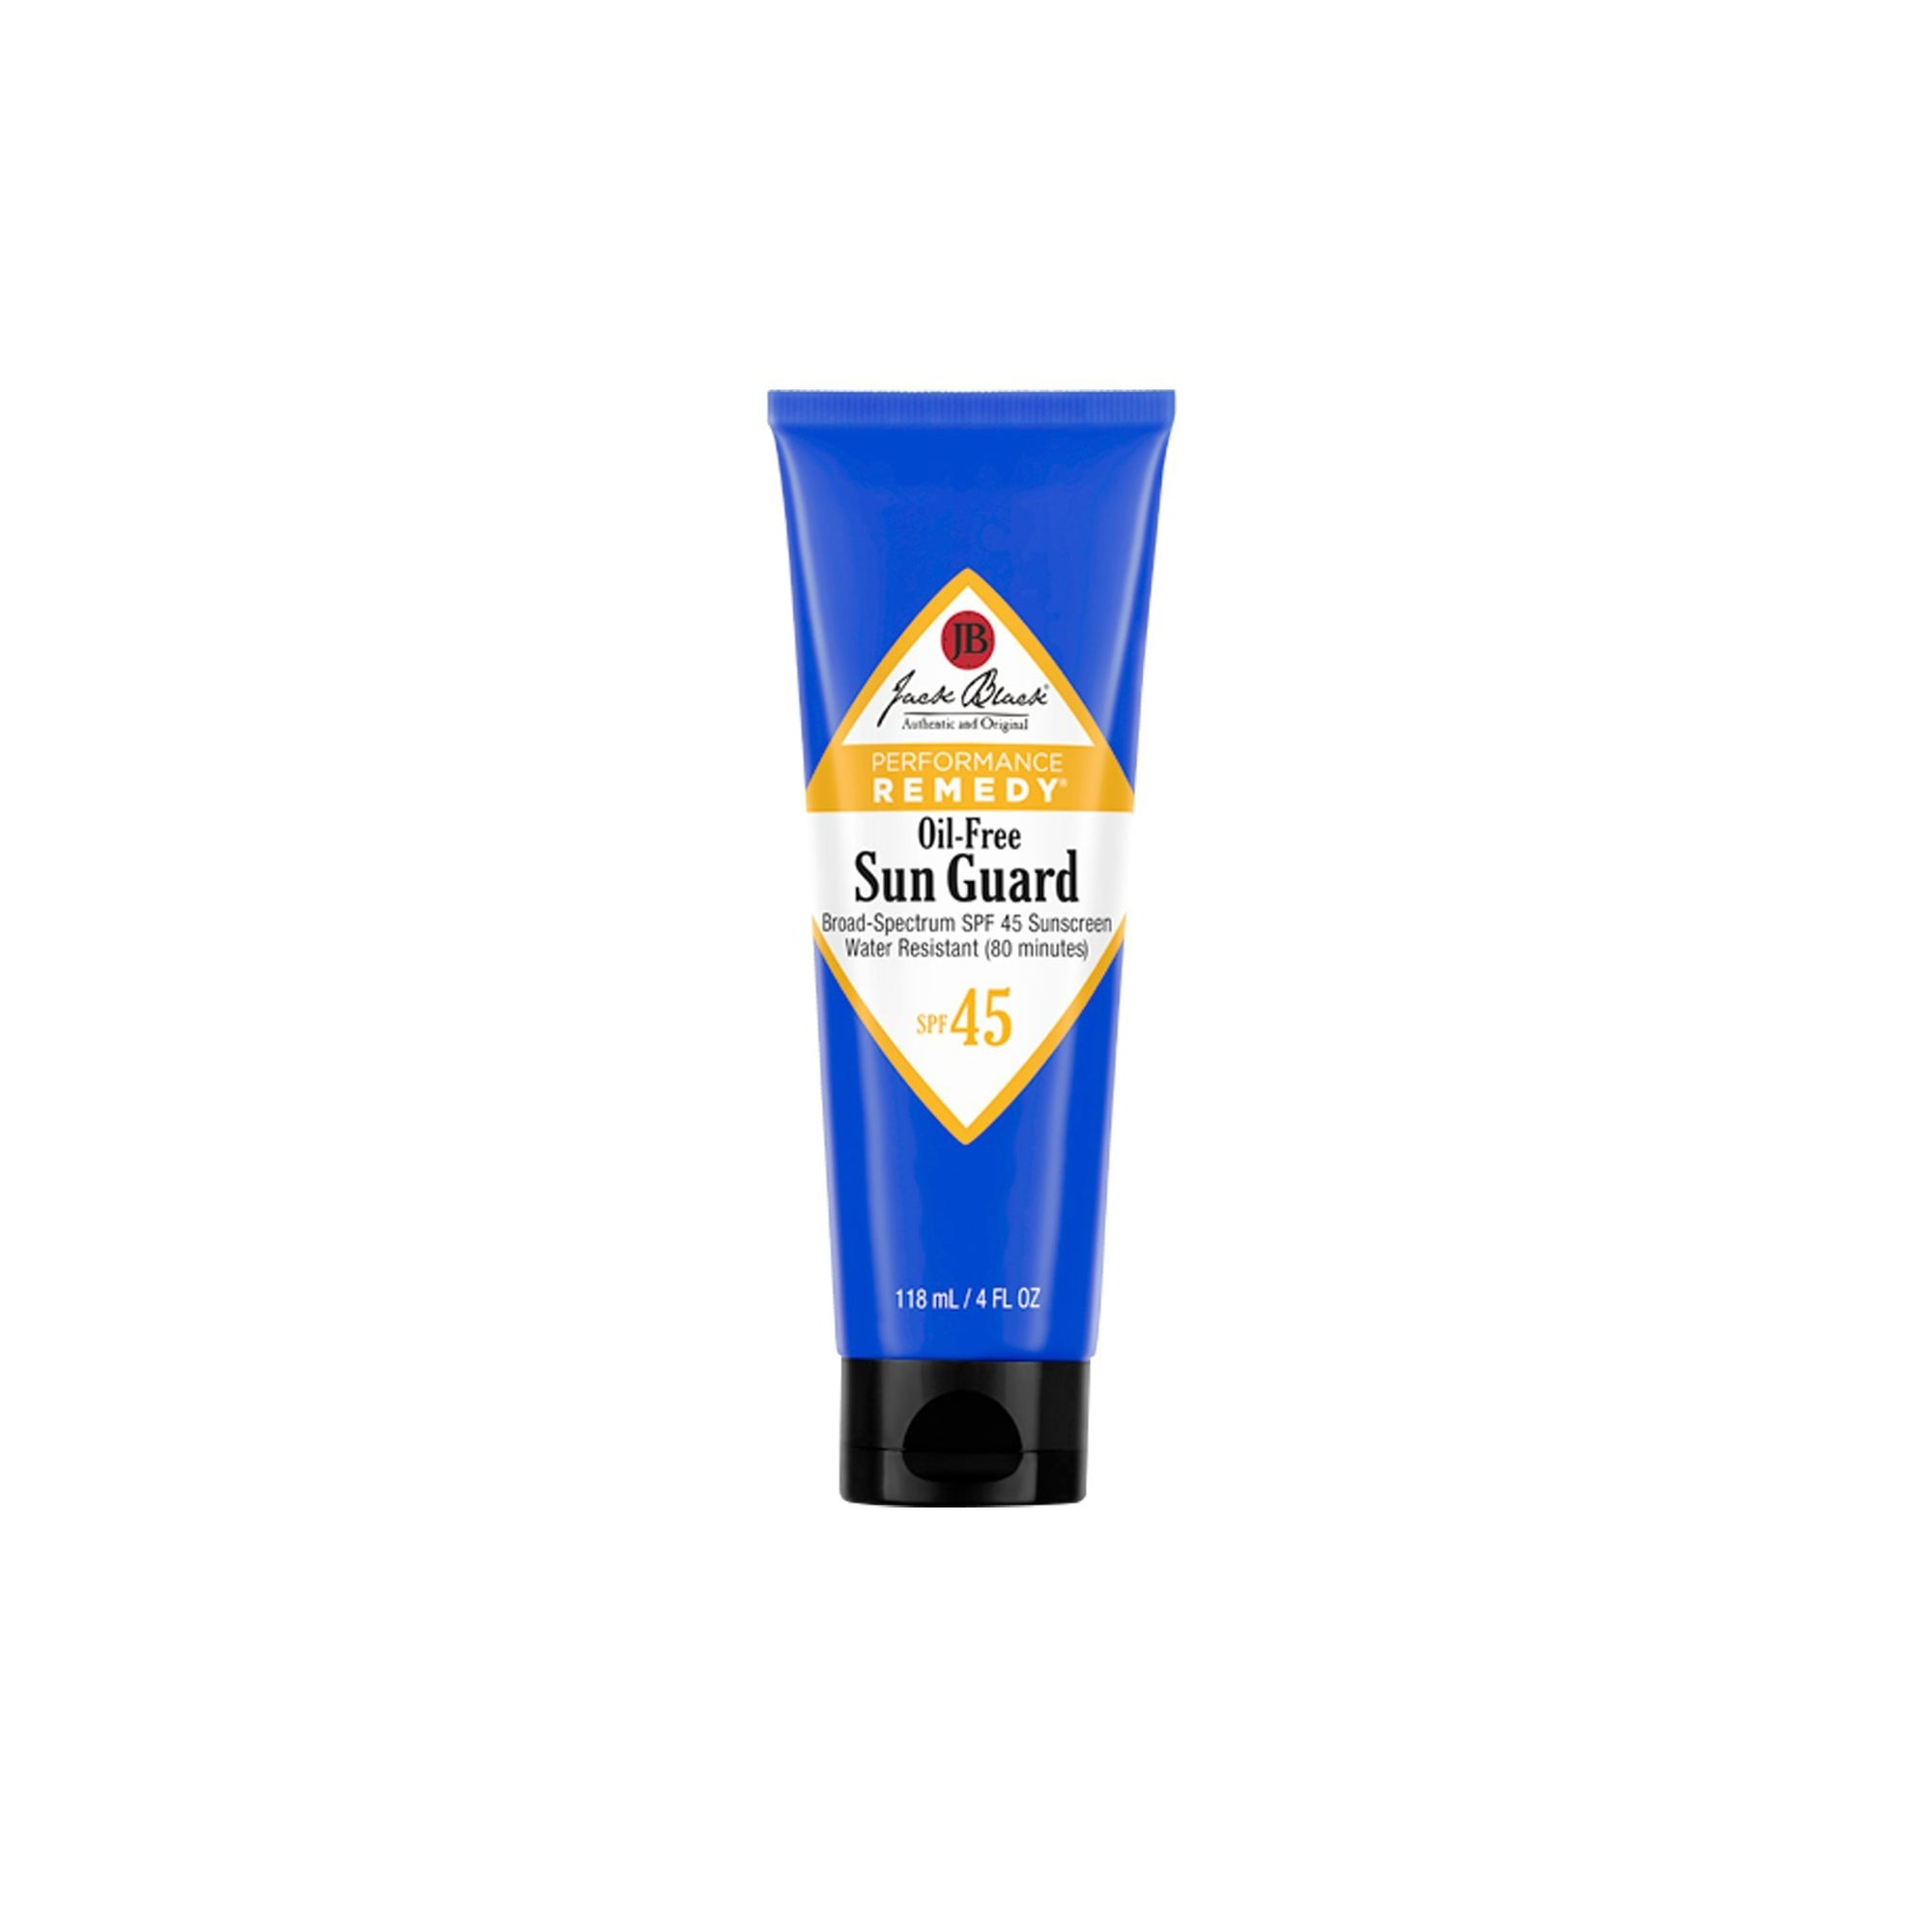 Jack Black Oil-Free Sun Guard SPF 45 Sunscreen 118ml